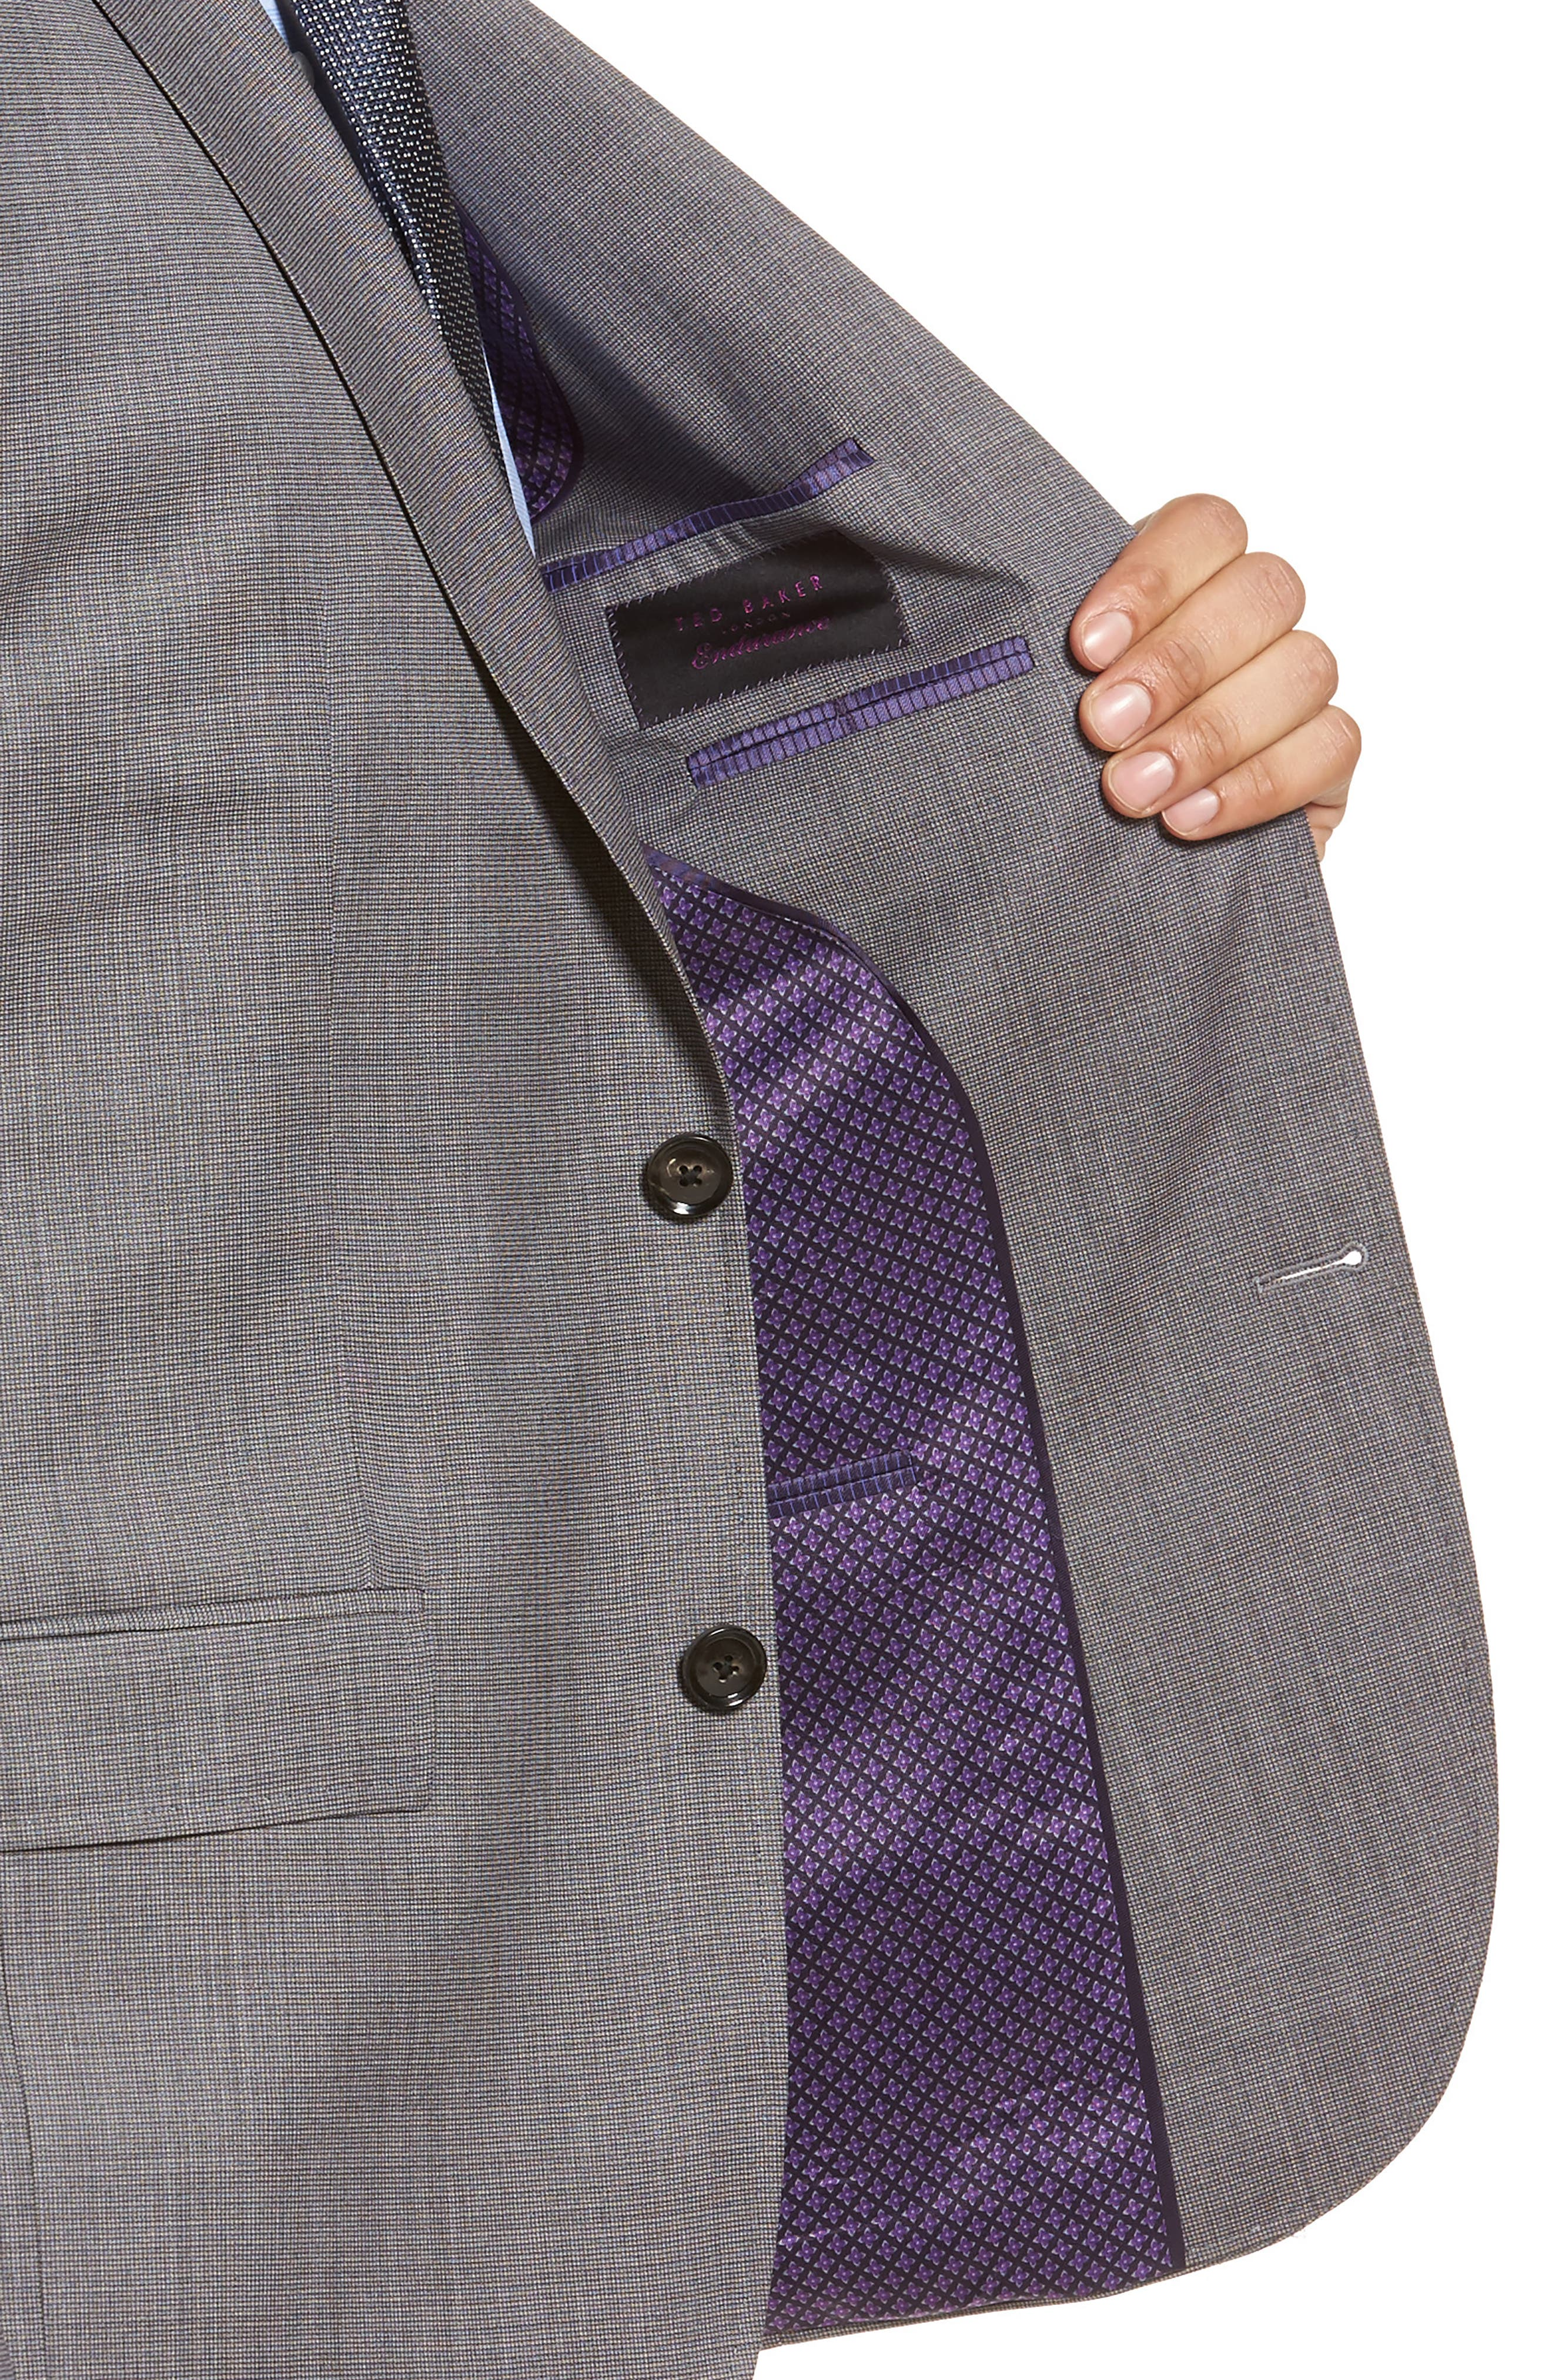 Roger Extra Slim Fit Solid Wool Suit,                             Alternate thumbnail 4, color,